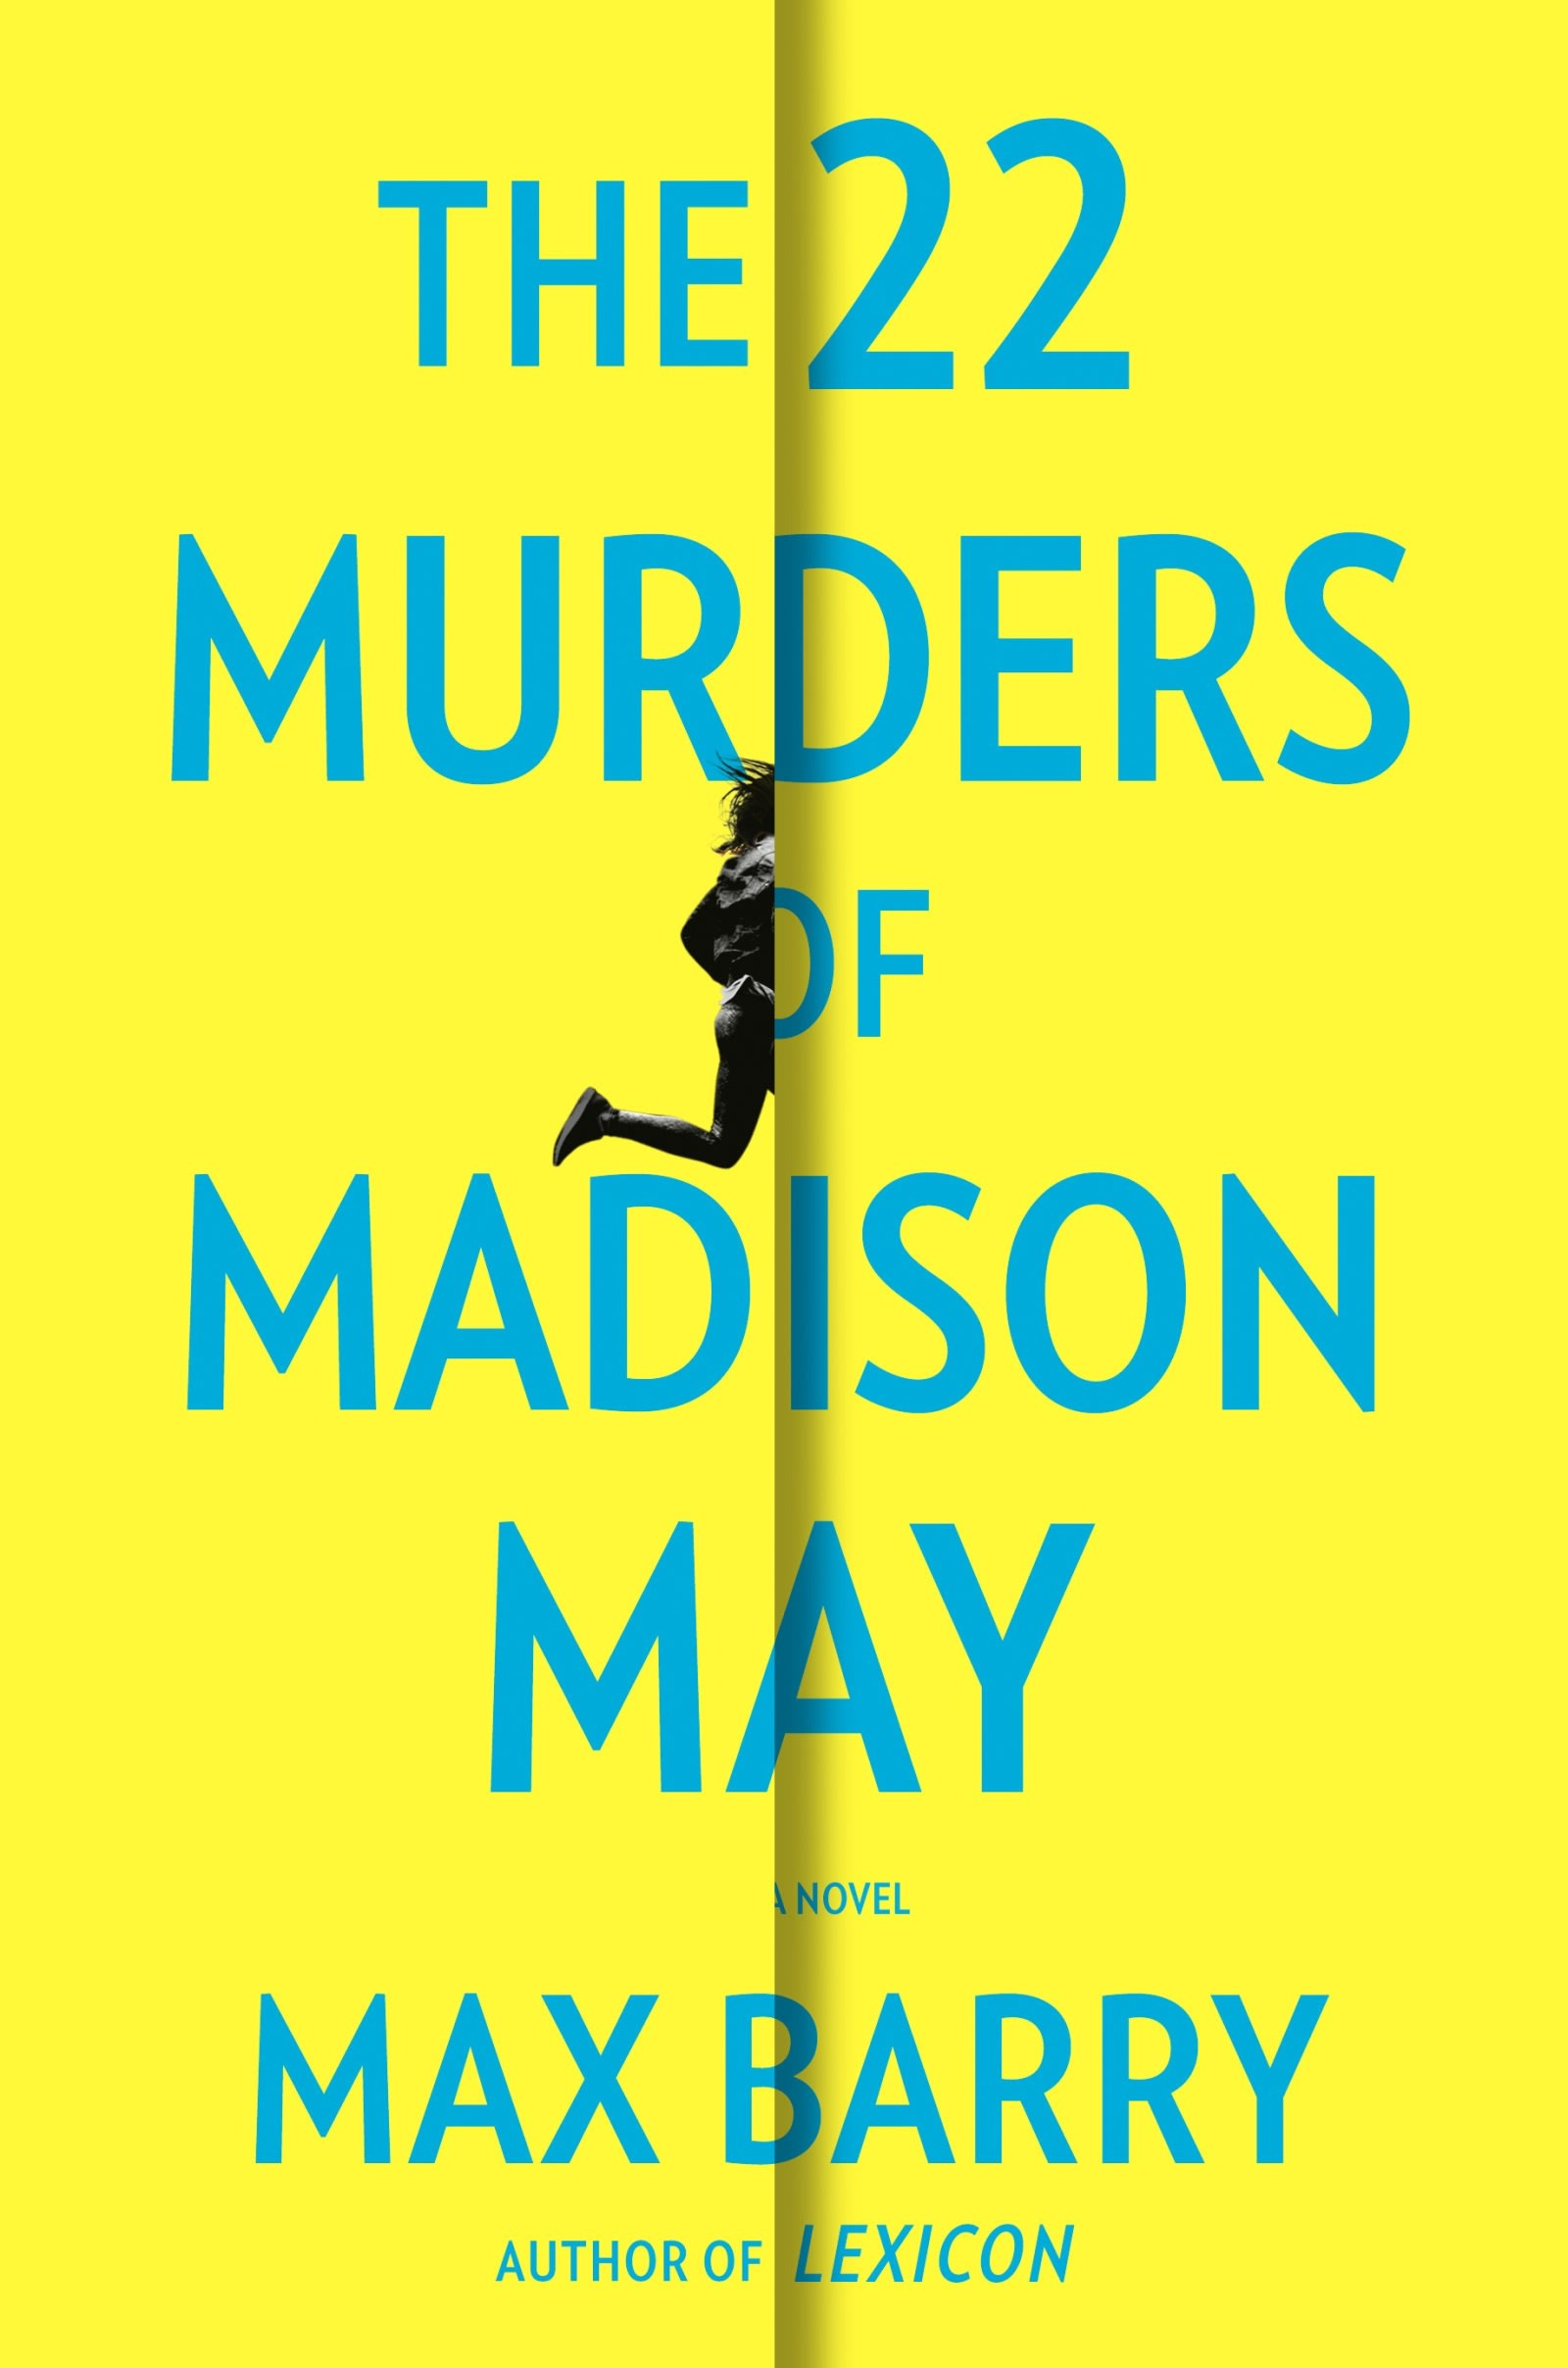 22 Murders of Madison May book cover